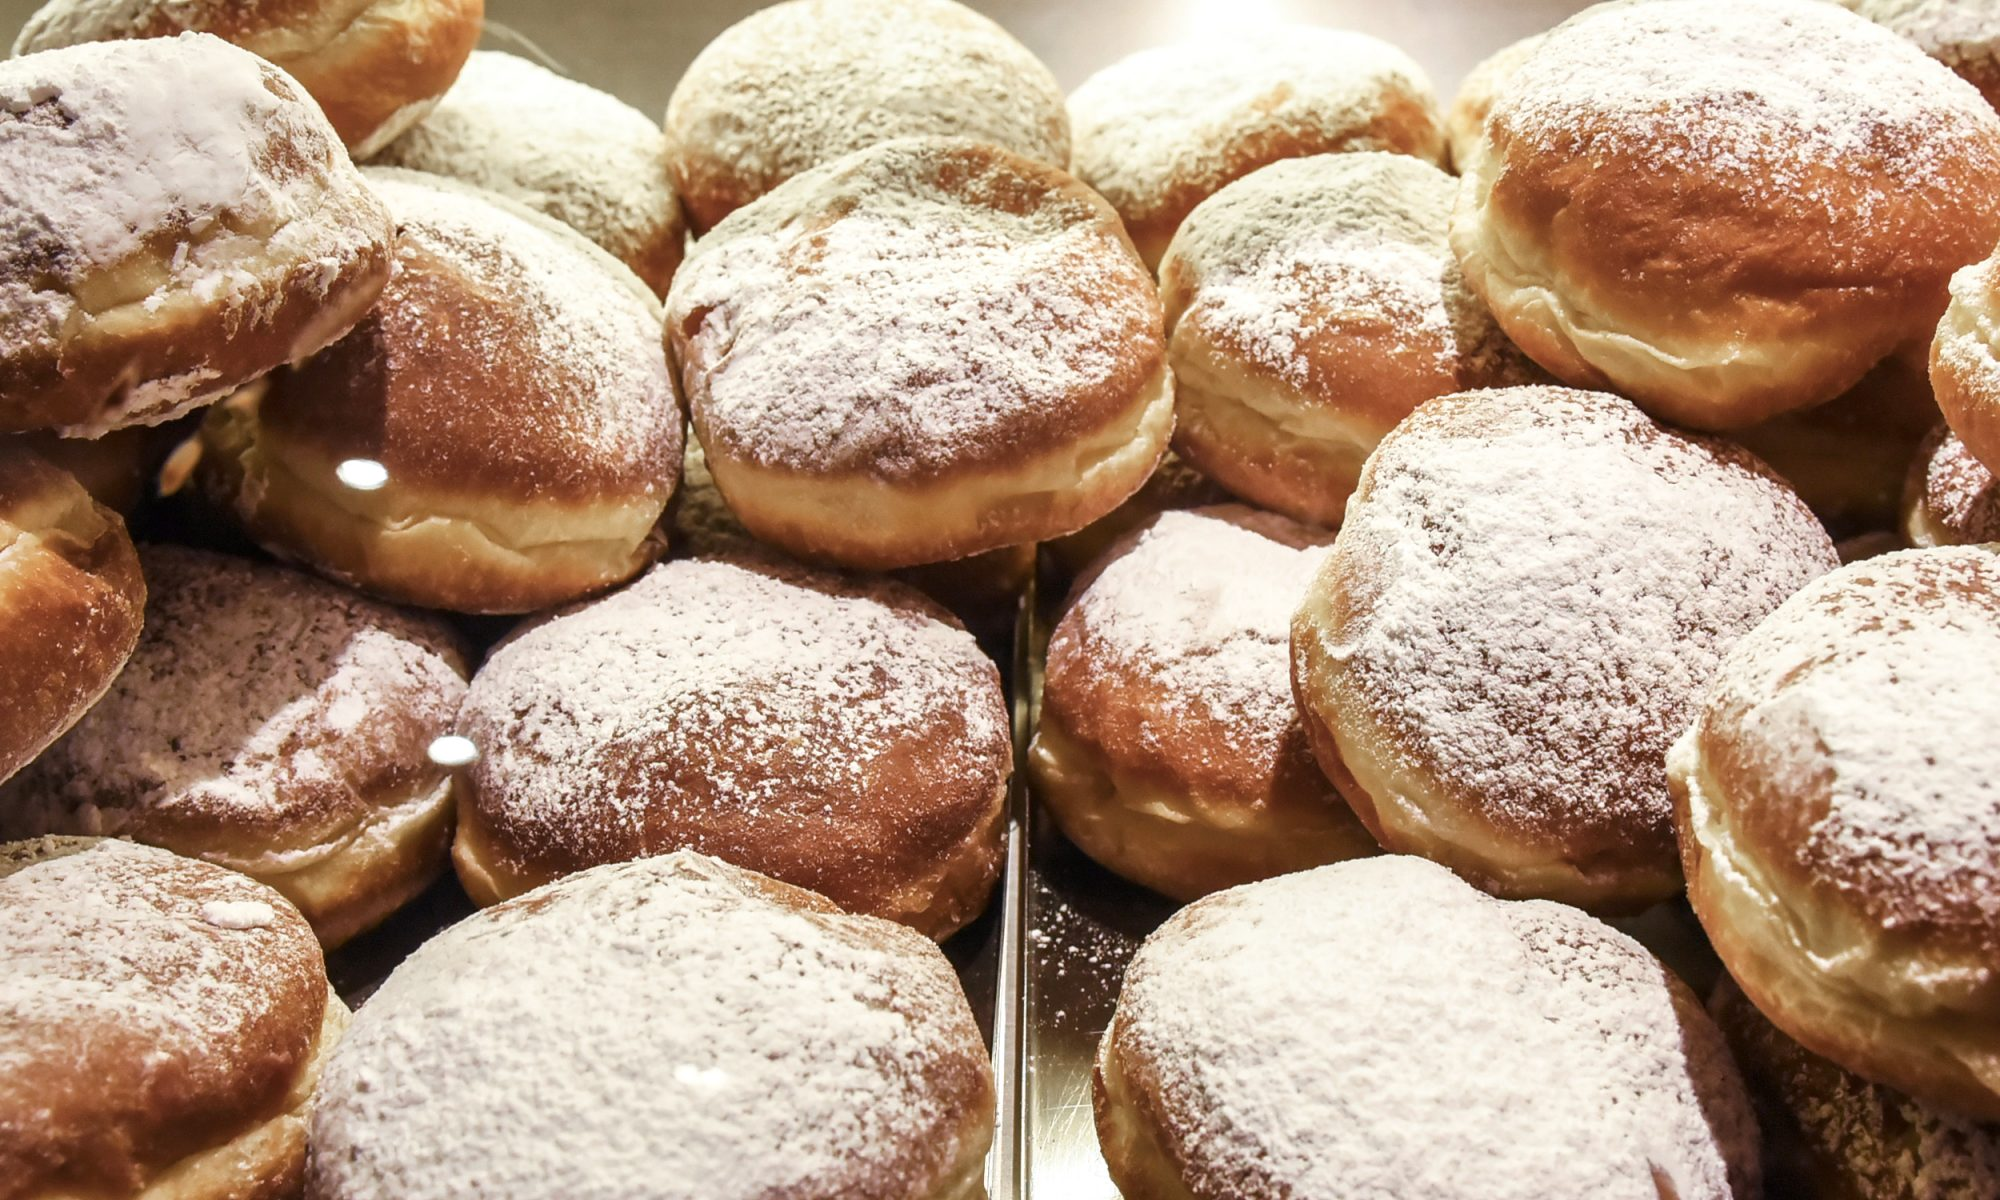 EC: Paczki Are Fat Tuesday Polish Doughnuts Filled with Regional Pride